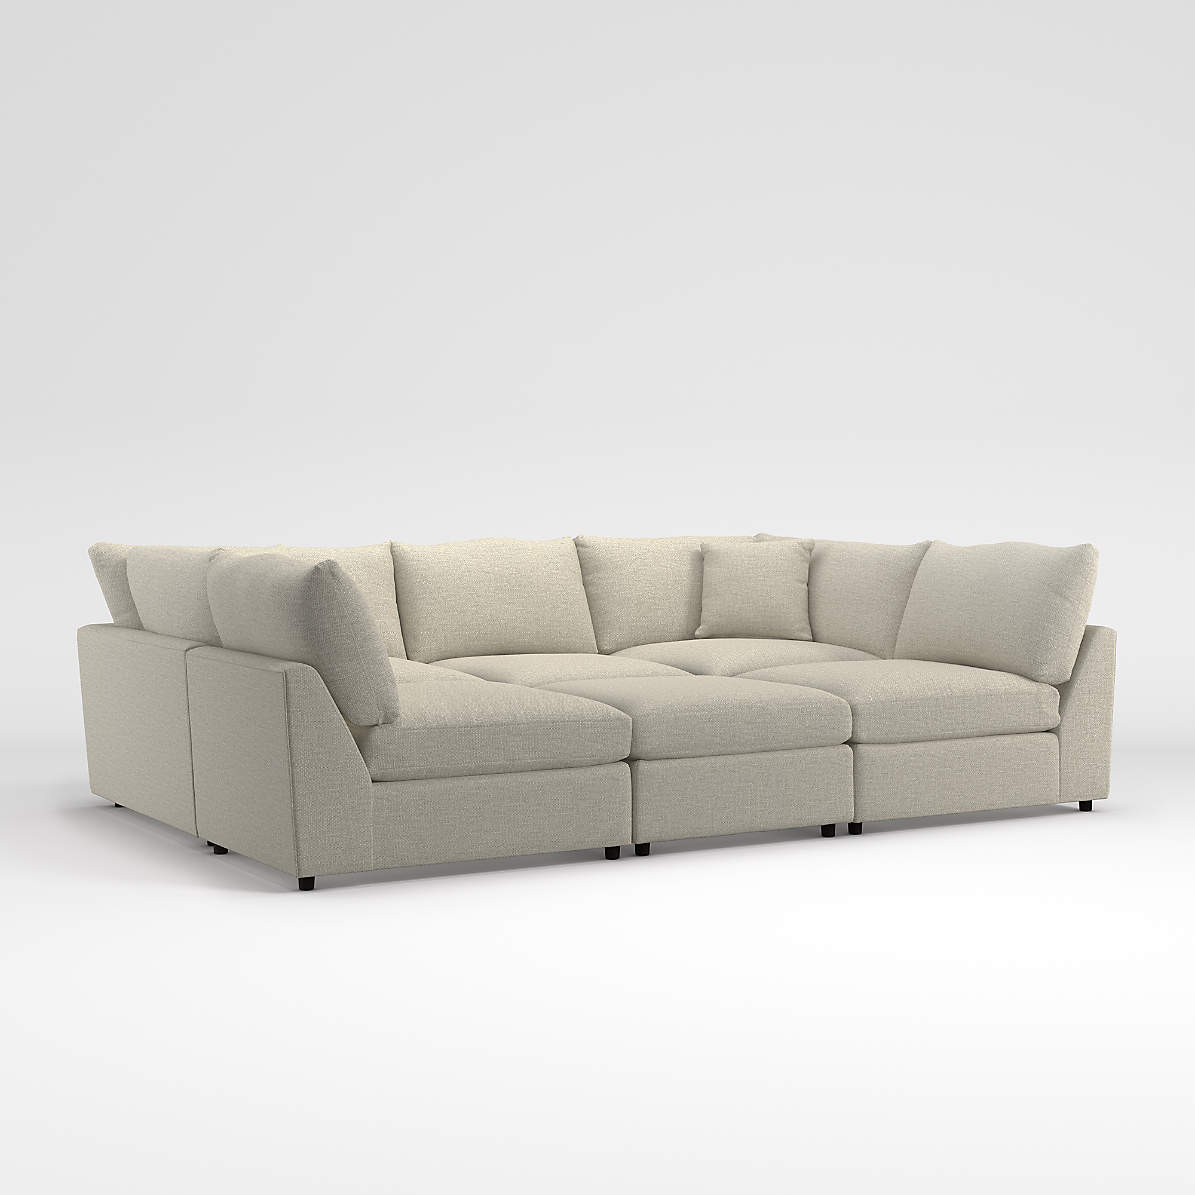 lounge 6 piece pit sectional crate and barrel